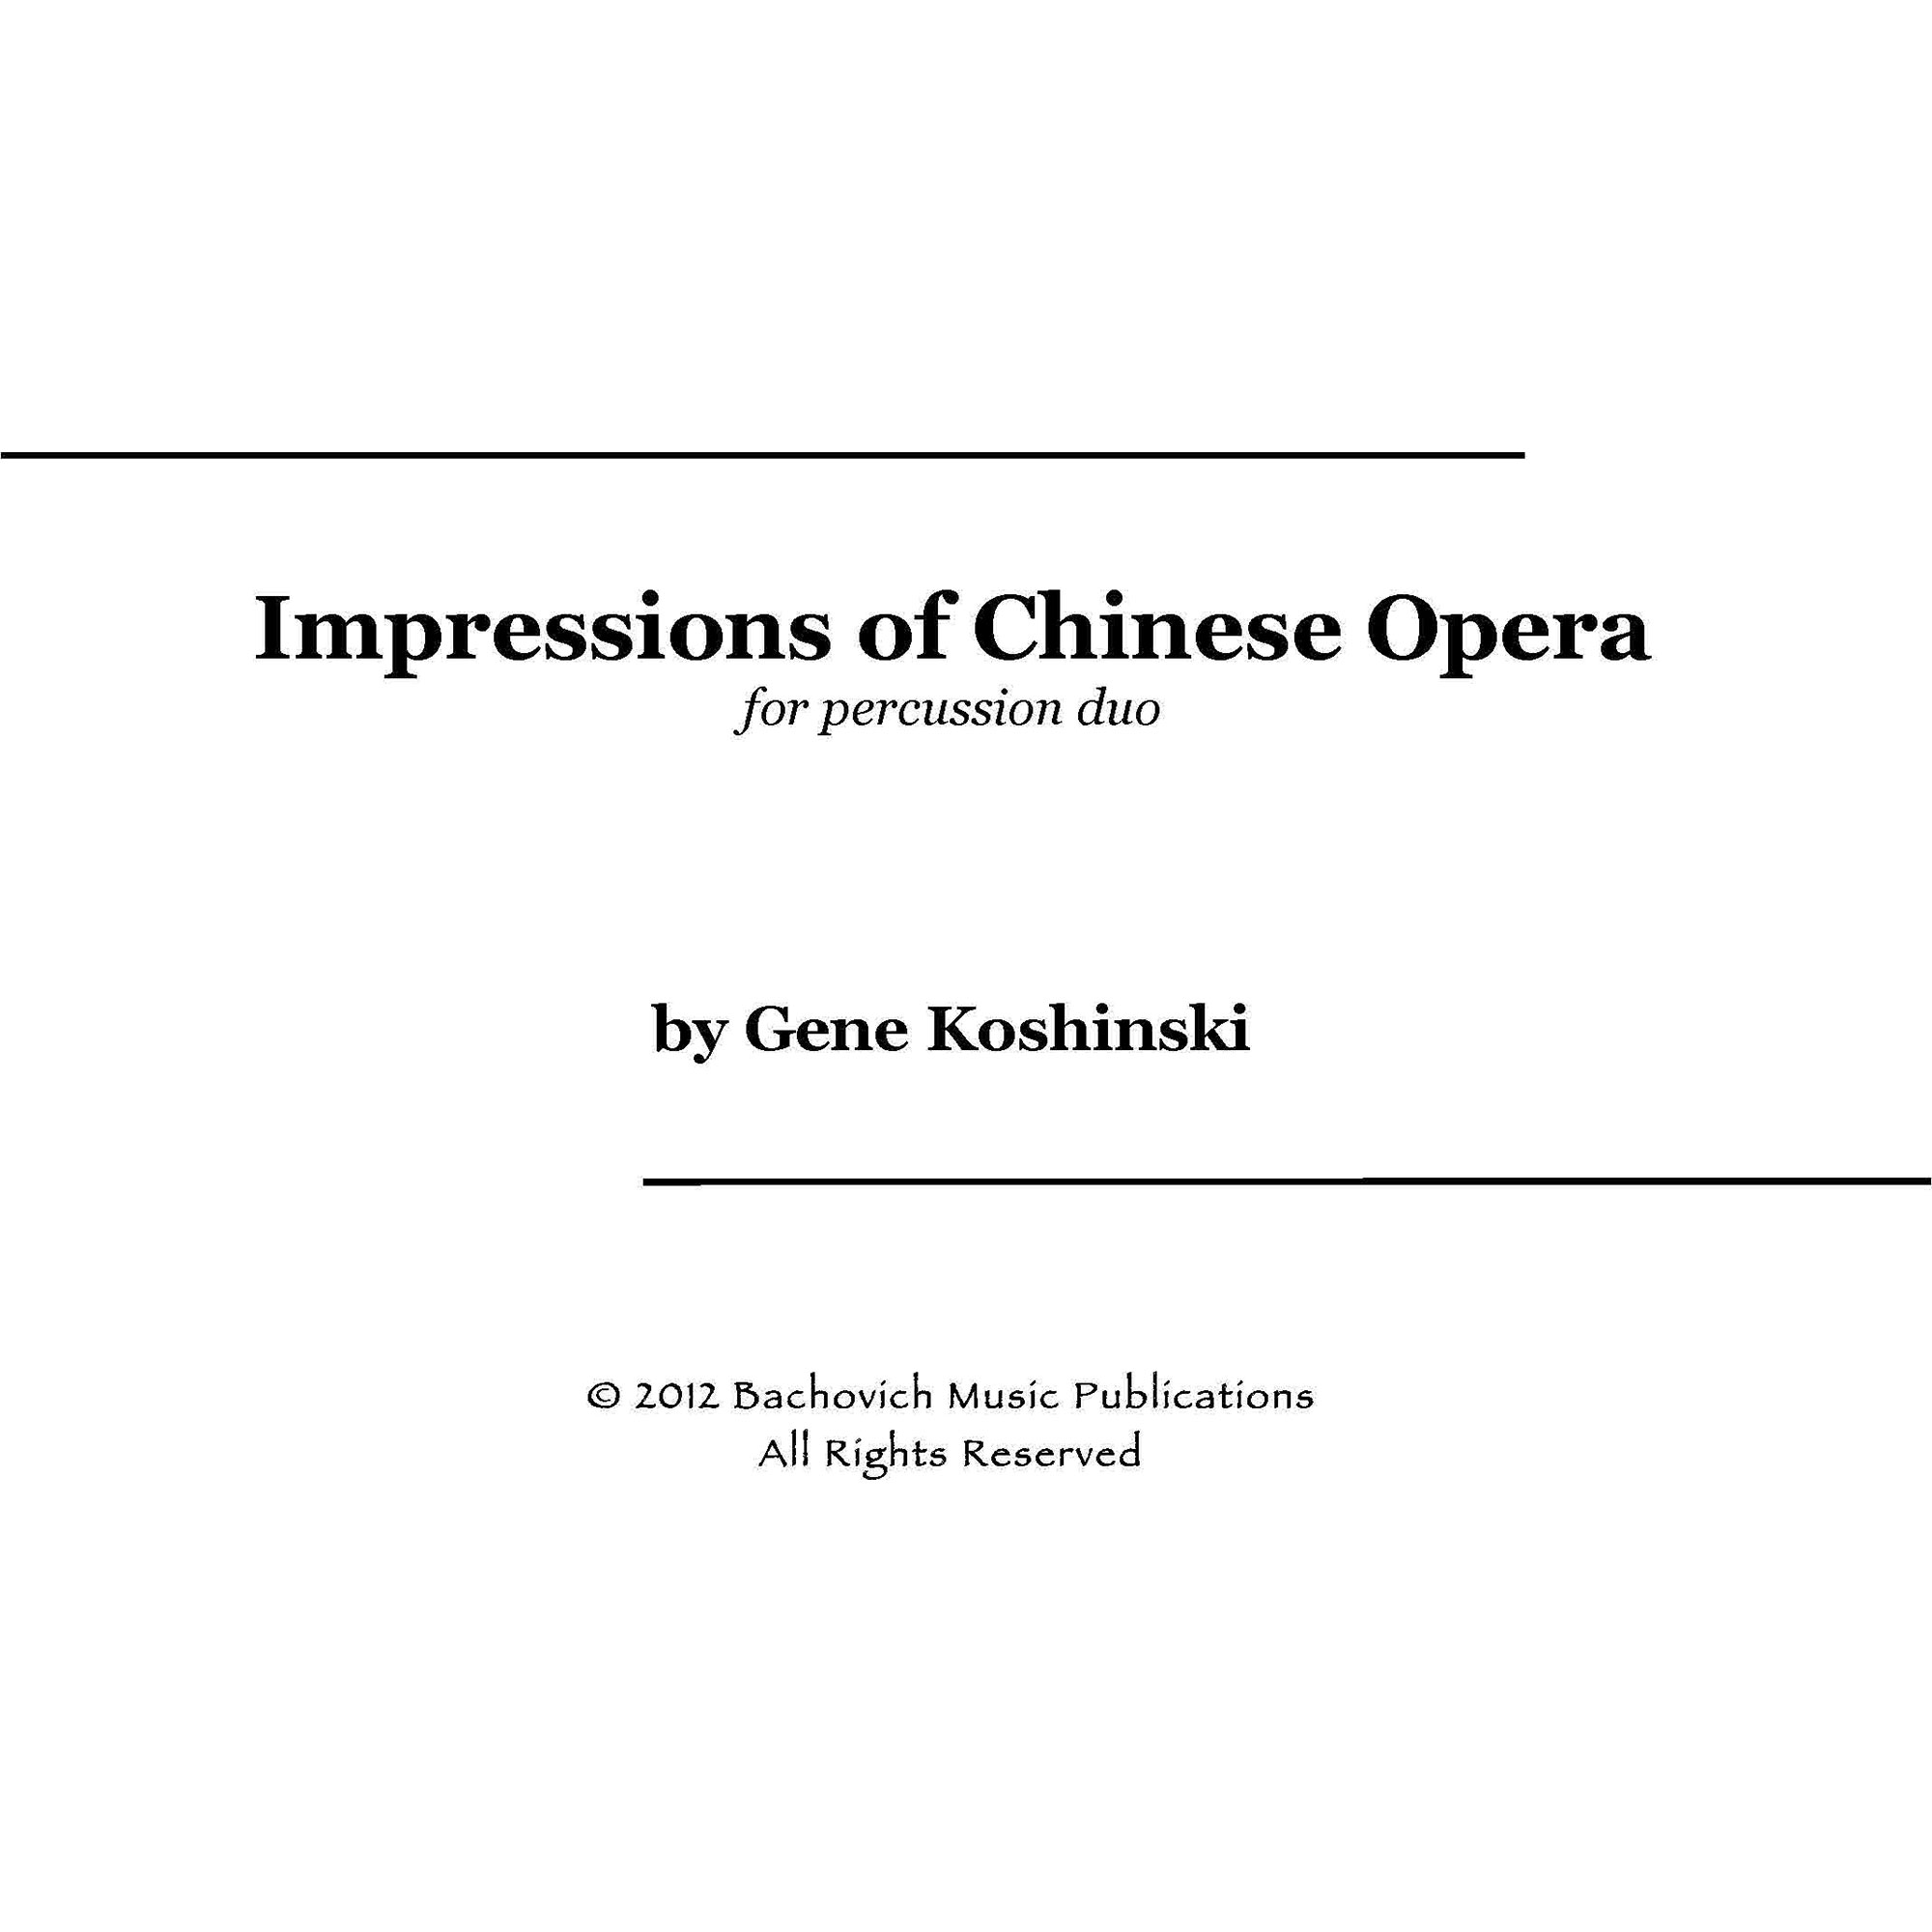 Impressions of Chinese Opera for Percussion Duet by Gene Koshinski